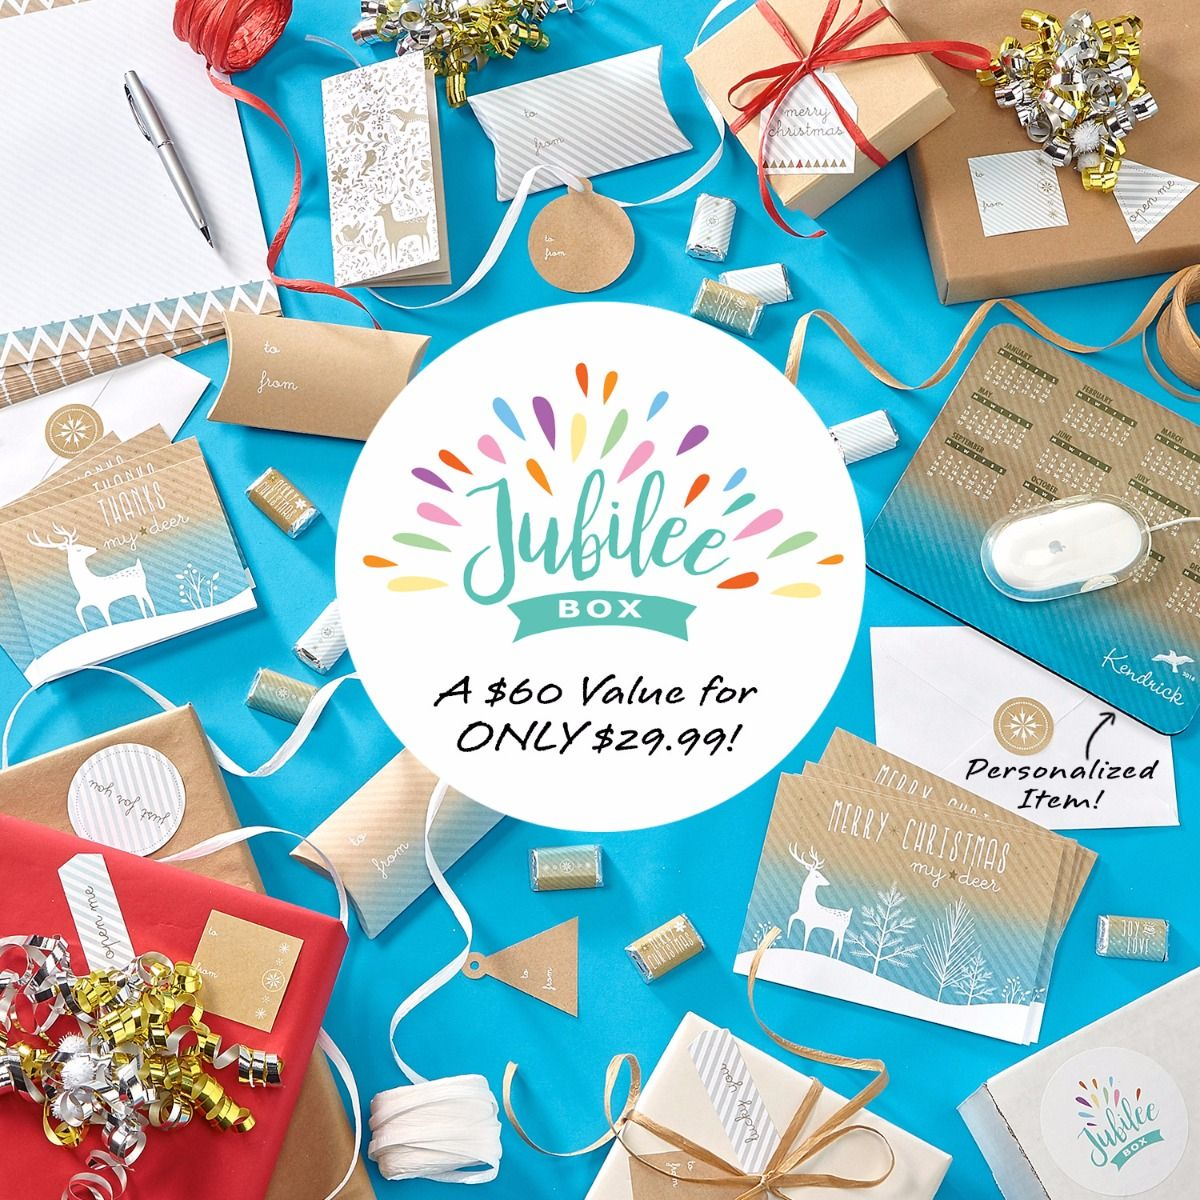 Jubilee Box – Stationery, Wrap & Gifts Subscription Box